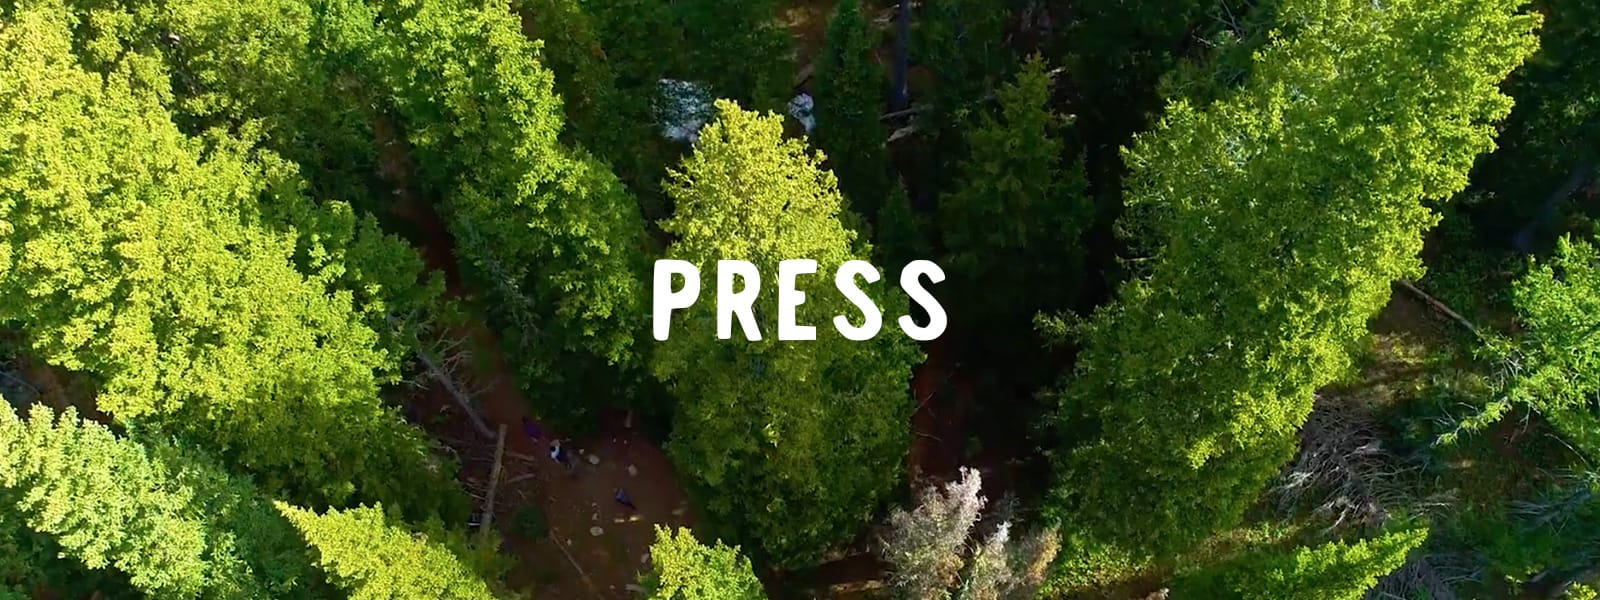 Image of Forest with word Press centered